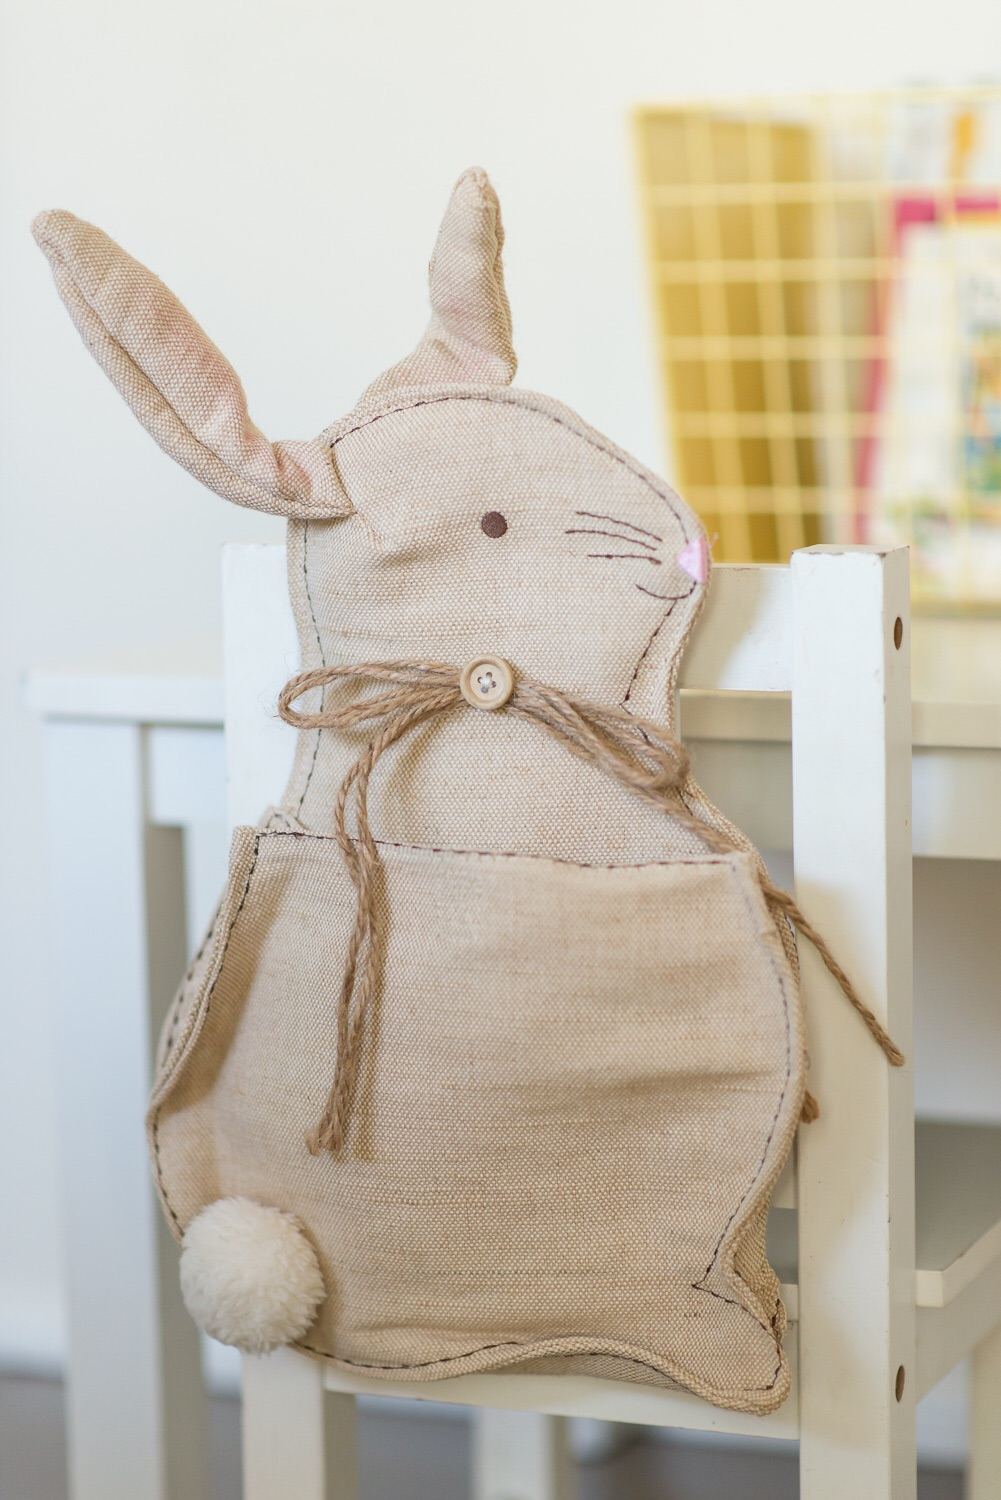 Bunny chair cover from  Pottery Barn kids  (check their website after Easter as they usually have sales)